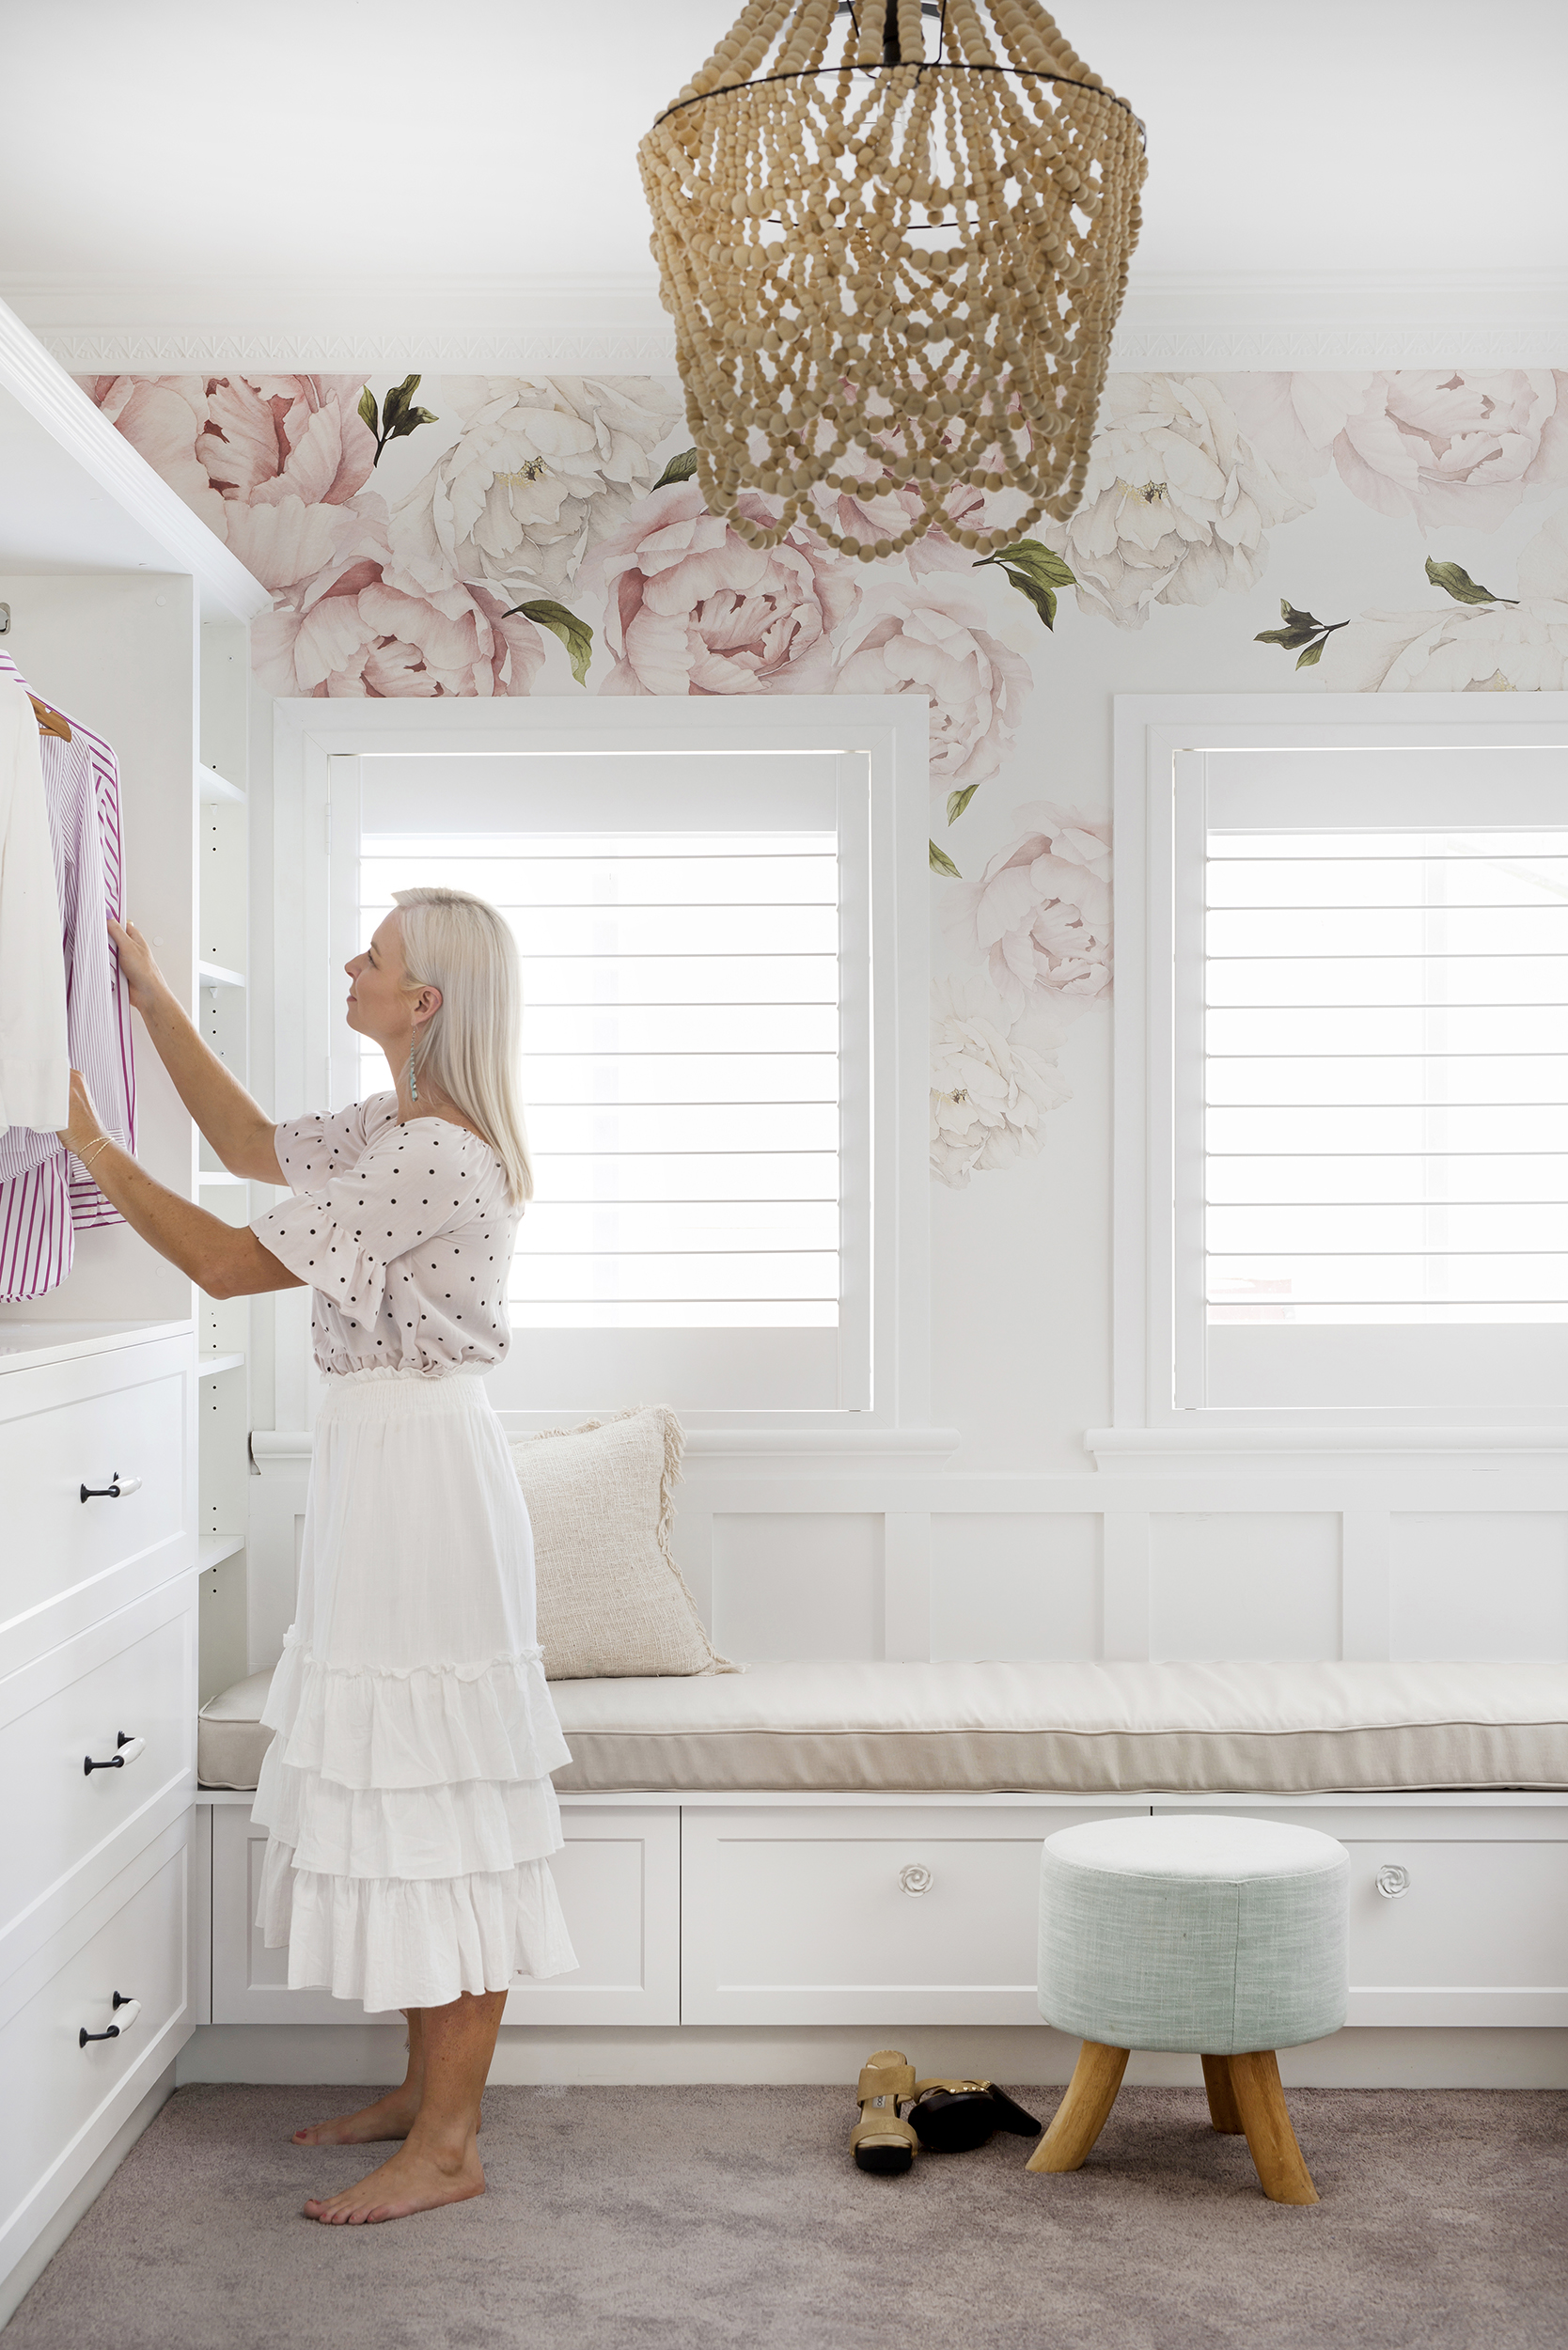 Individual flower wall decals from Rocky Mountain Decals create a dreamy, romantic space. Plantation shutters from DIY Blinds; pendant light from Wanderlust 4 Lighting; cabinetry hardware from Tradco Hardware; carpet in upstairs bedrooms and walk-in robe by Godfrey Hirst.